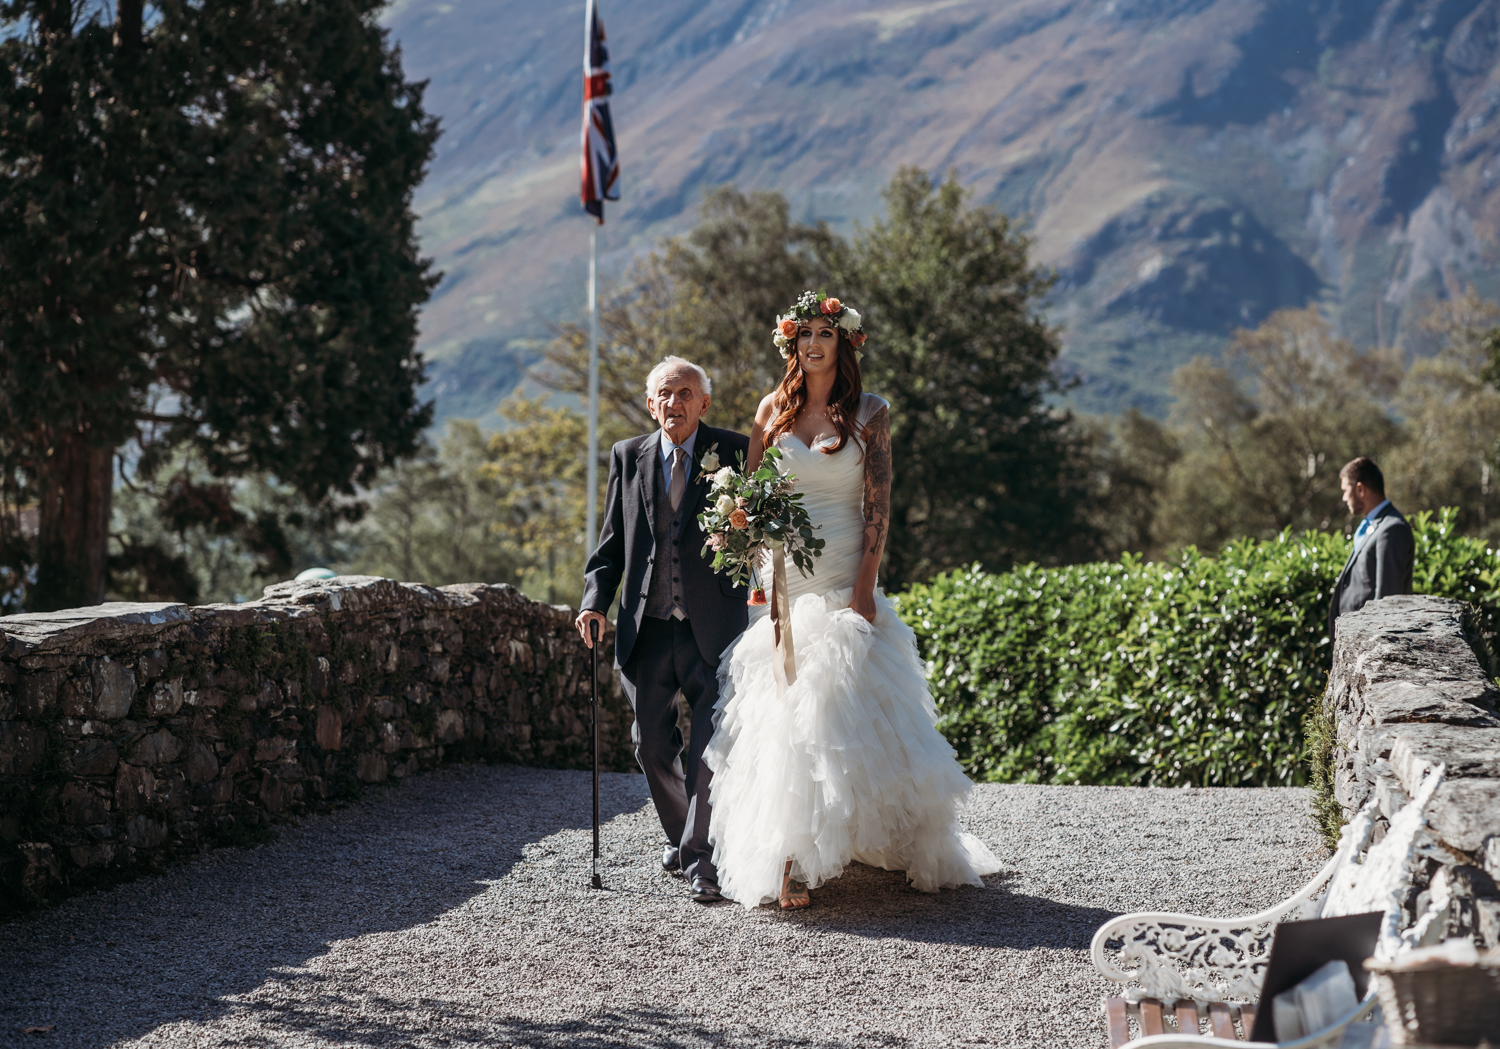 grandfather walks bride down the aise at Lodore Falls Wedding